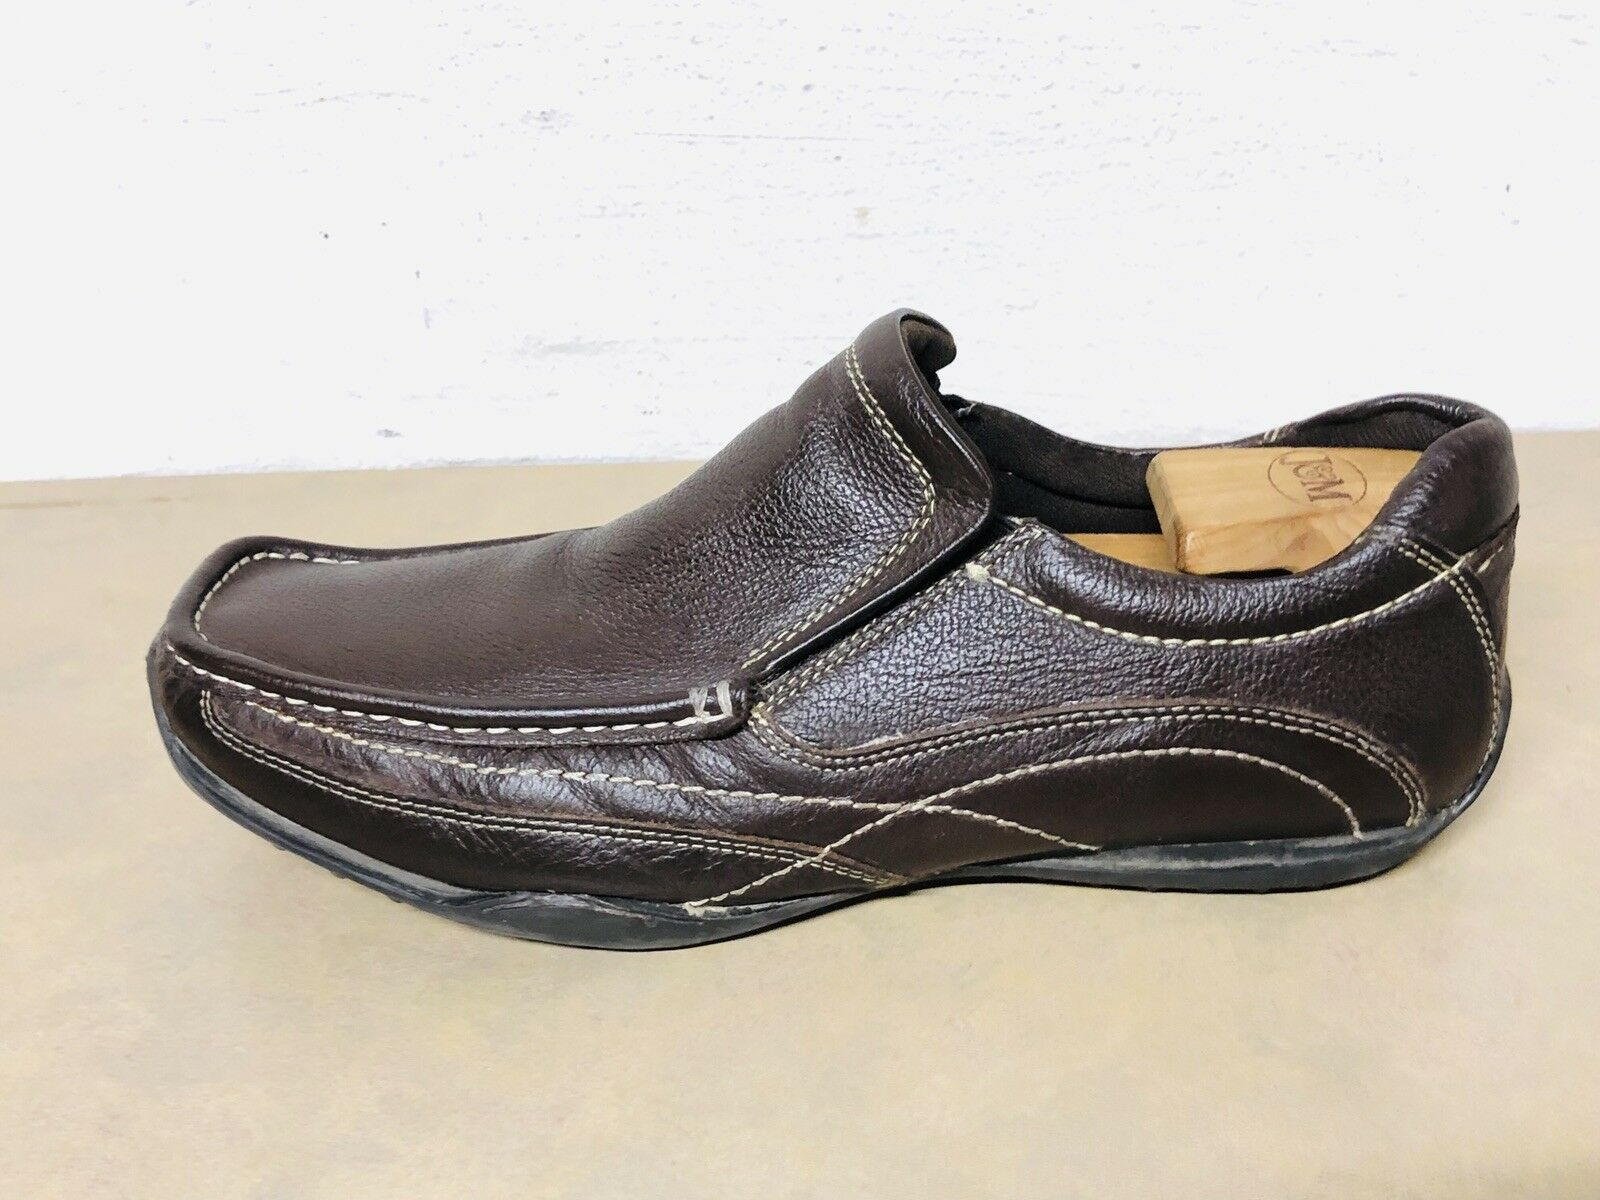 Red Tape Mens shoes Leather Tan BROWN Size 8 Casual Oxford Loafer